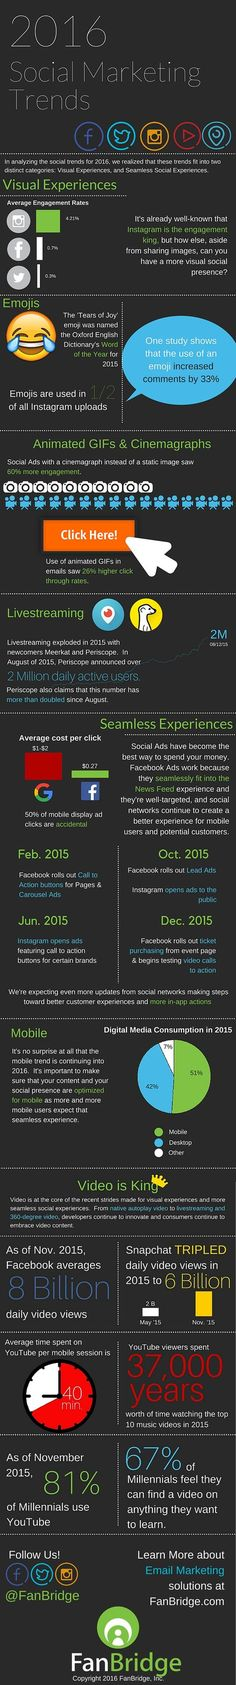 2016 Social Marketing Trends